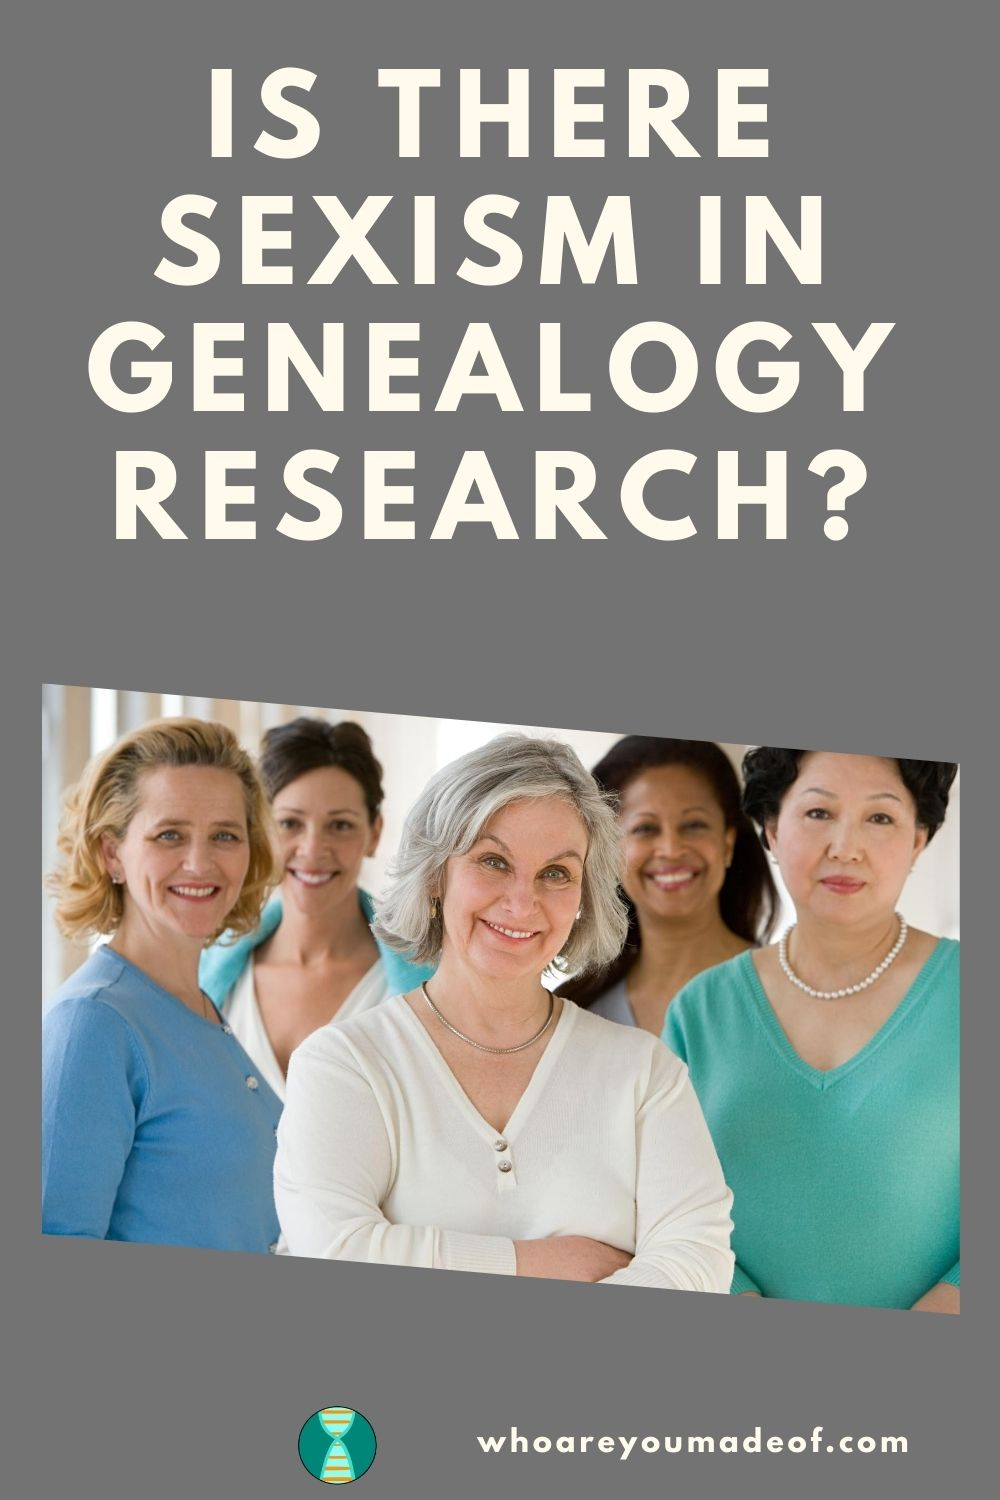 Is There Sexism in Genealogy Research Pinterest image with several women